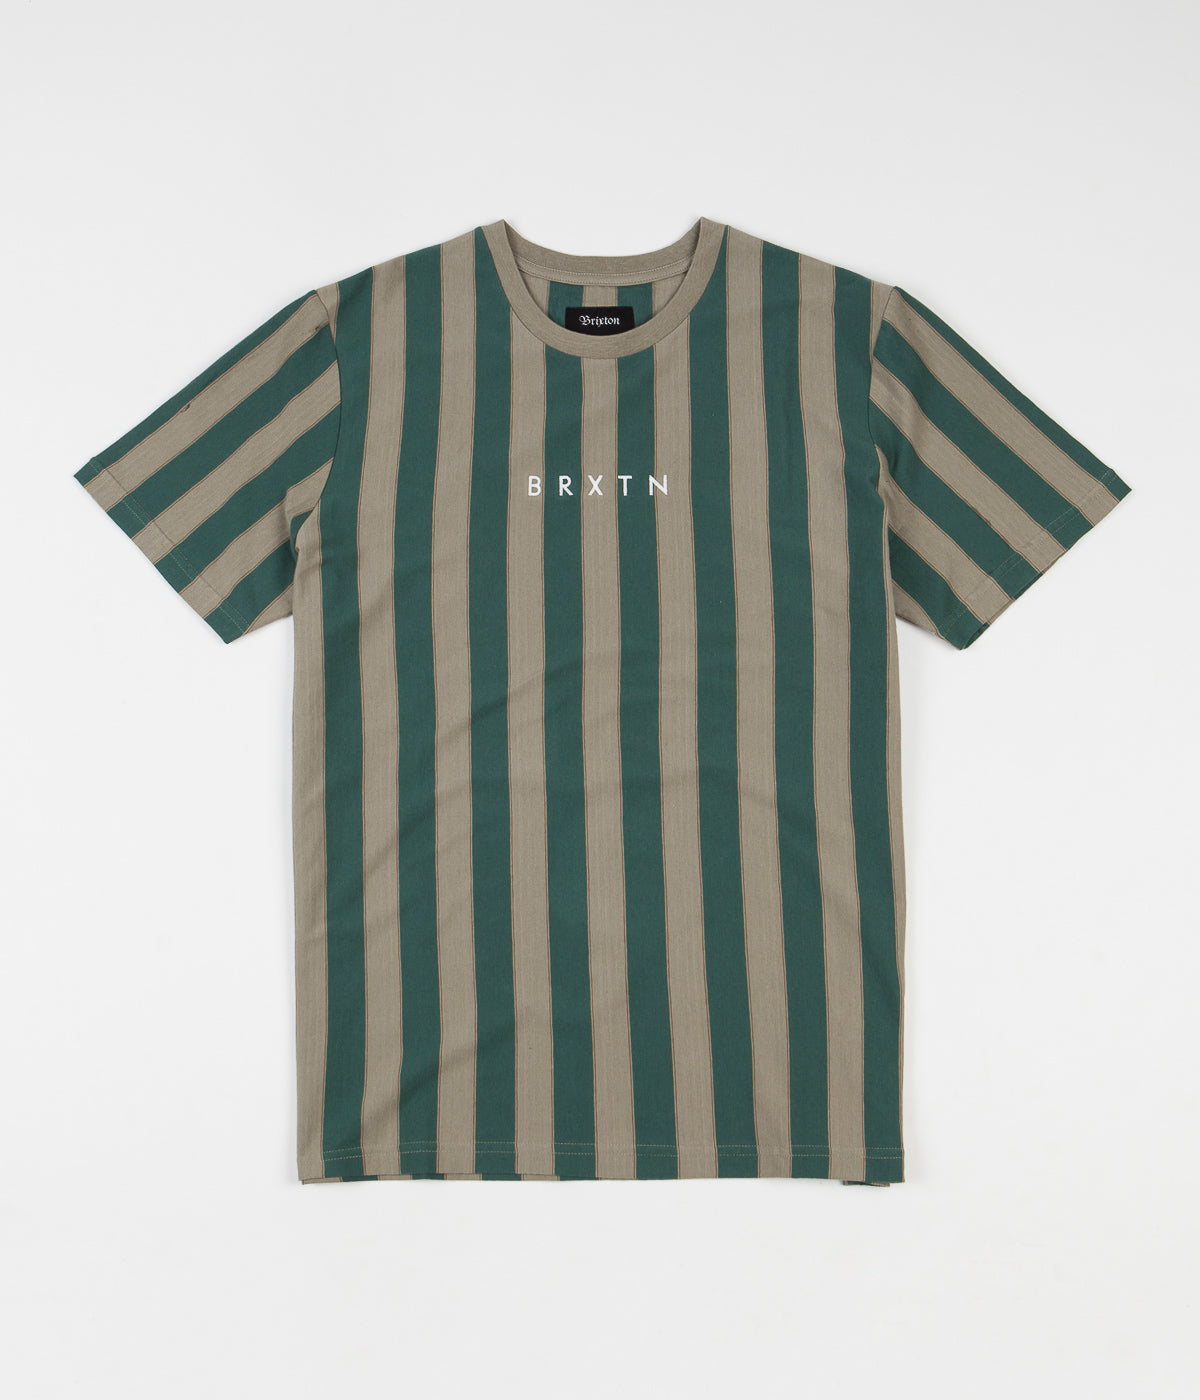 Brixton Hilt Embroidered Knit T-Shirt - Sage / Emerald